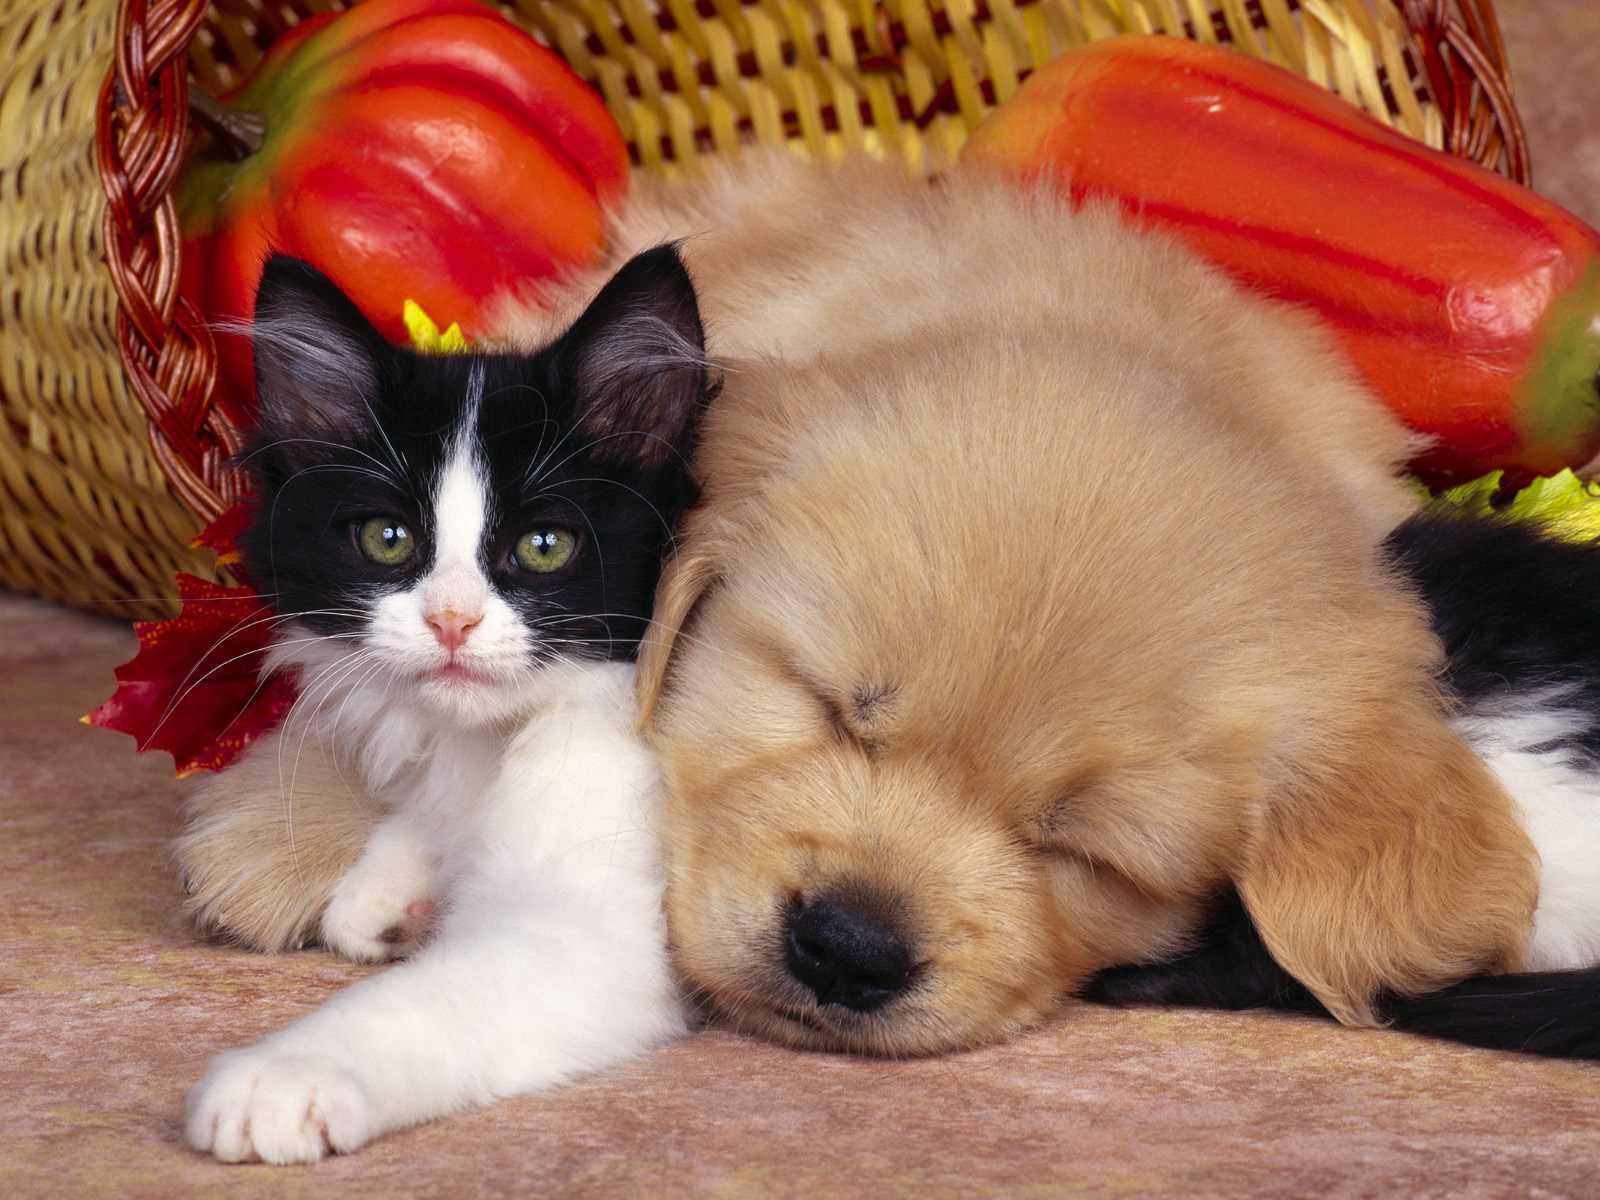 Oh Dea Cat and dog wallpapers 1600x1200